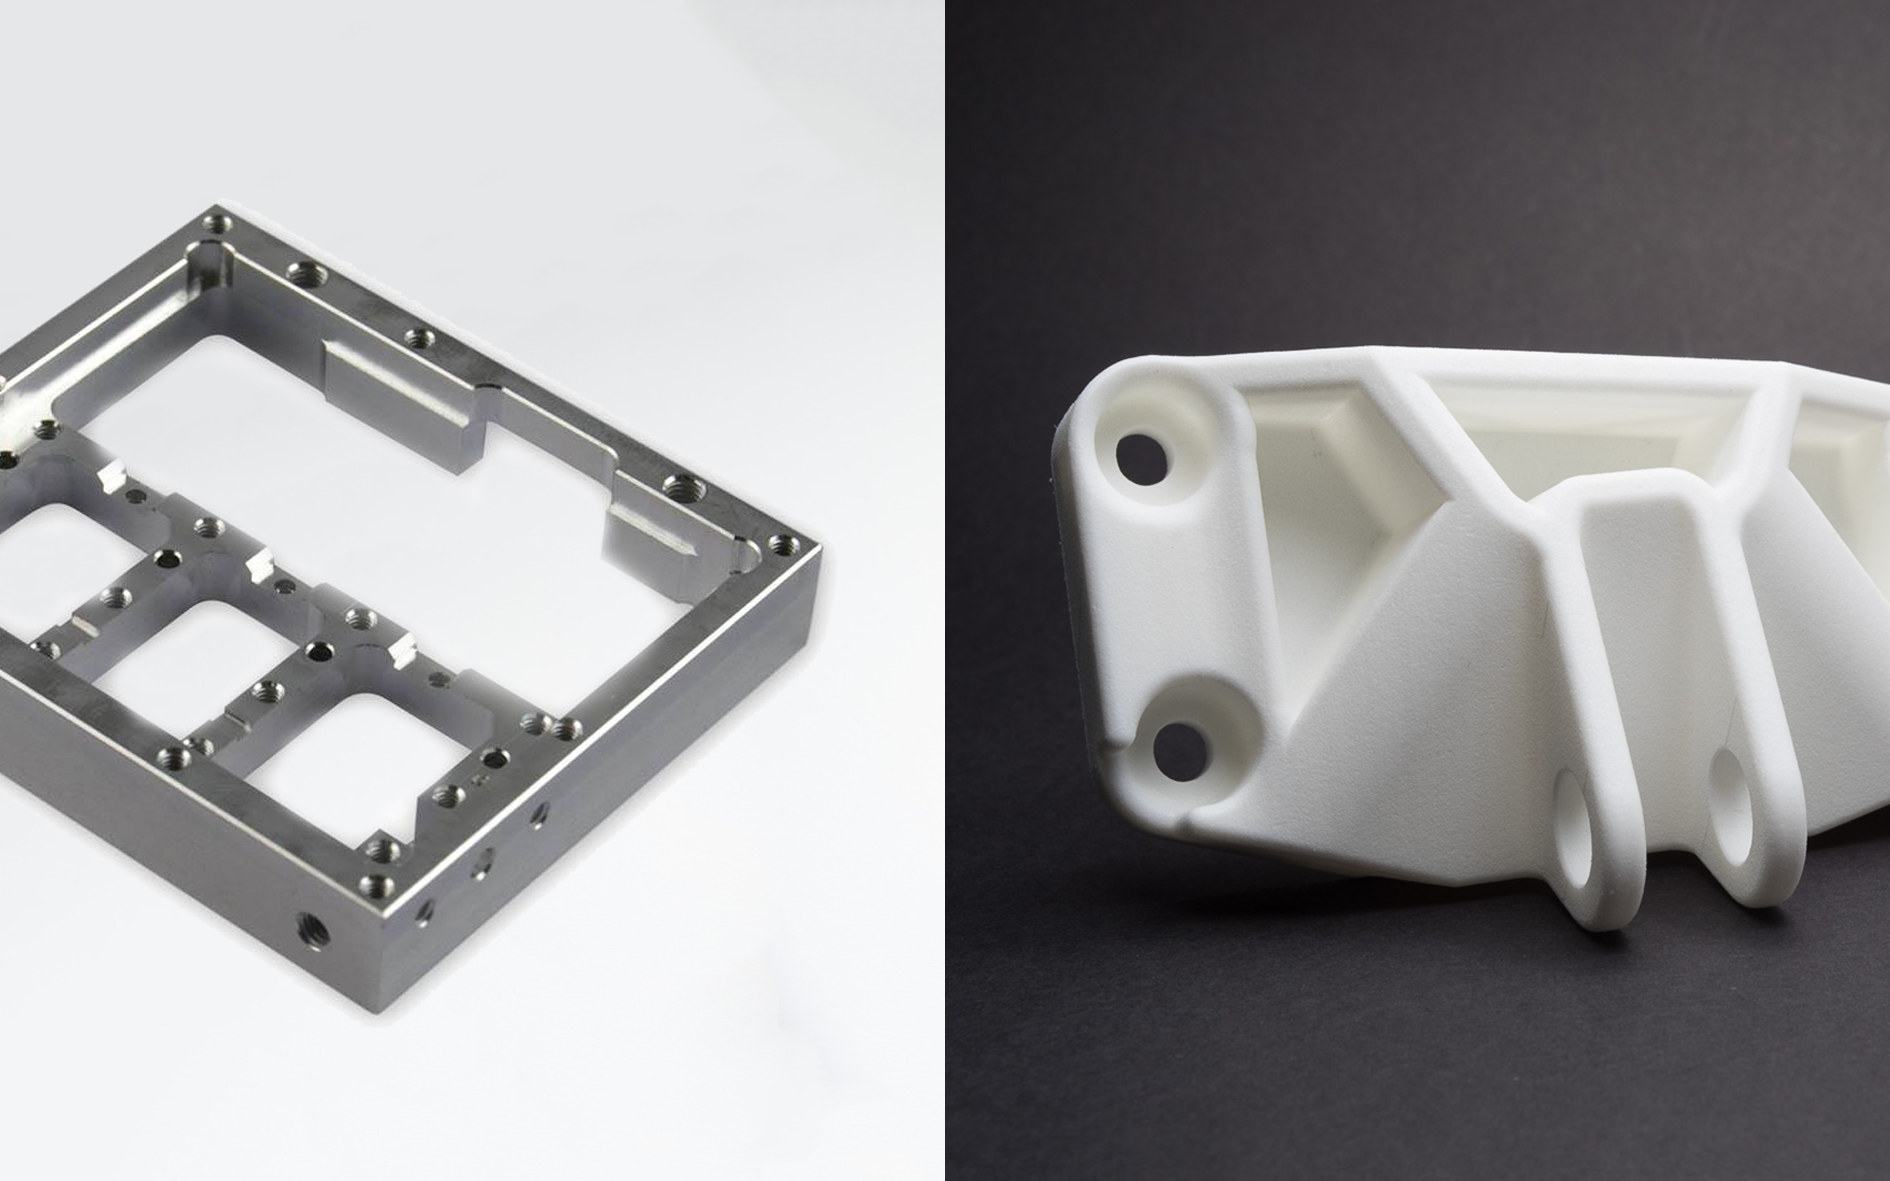 Color printing vs black and white cost - An Aluminium Bracket Made Via Cnc Machining Left And A Functional Nylon Bracket Made With Sls Printing Right